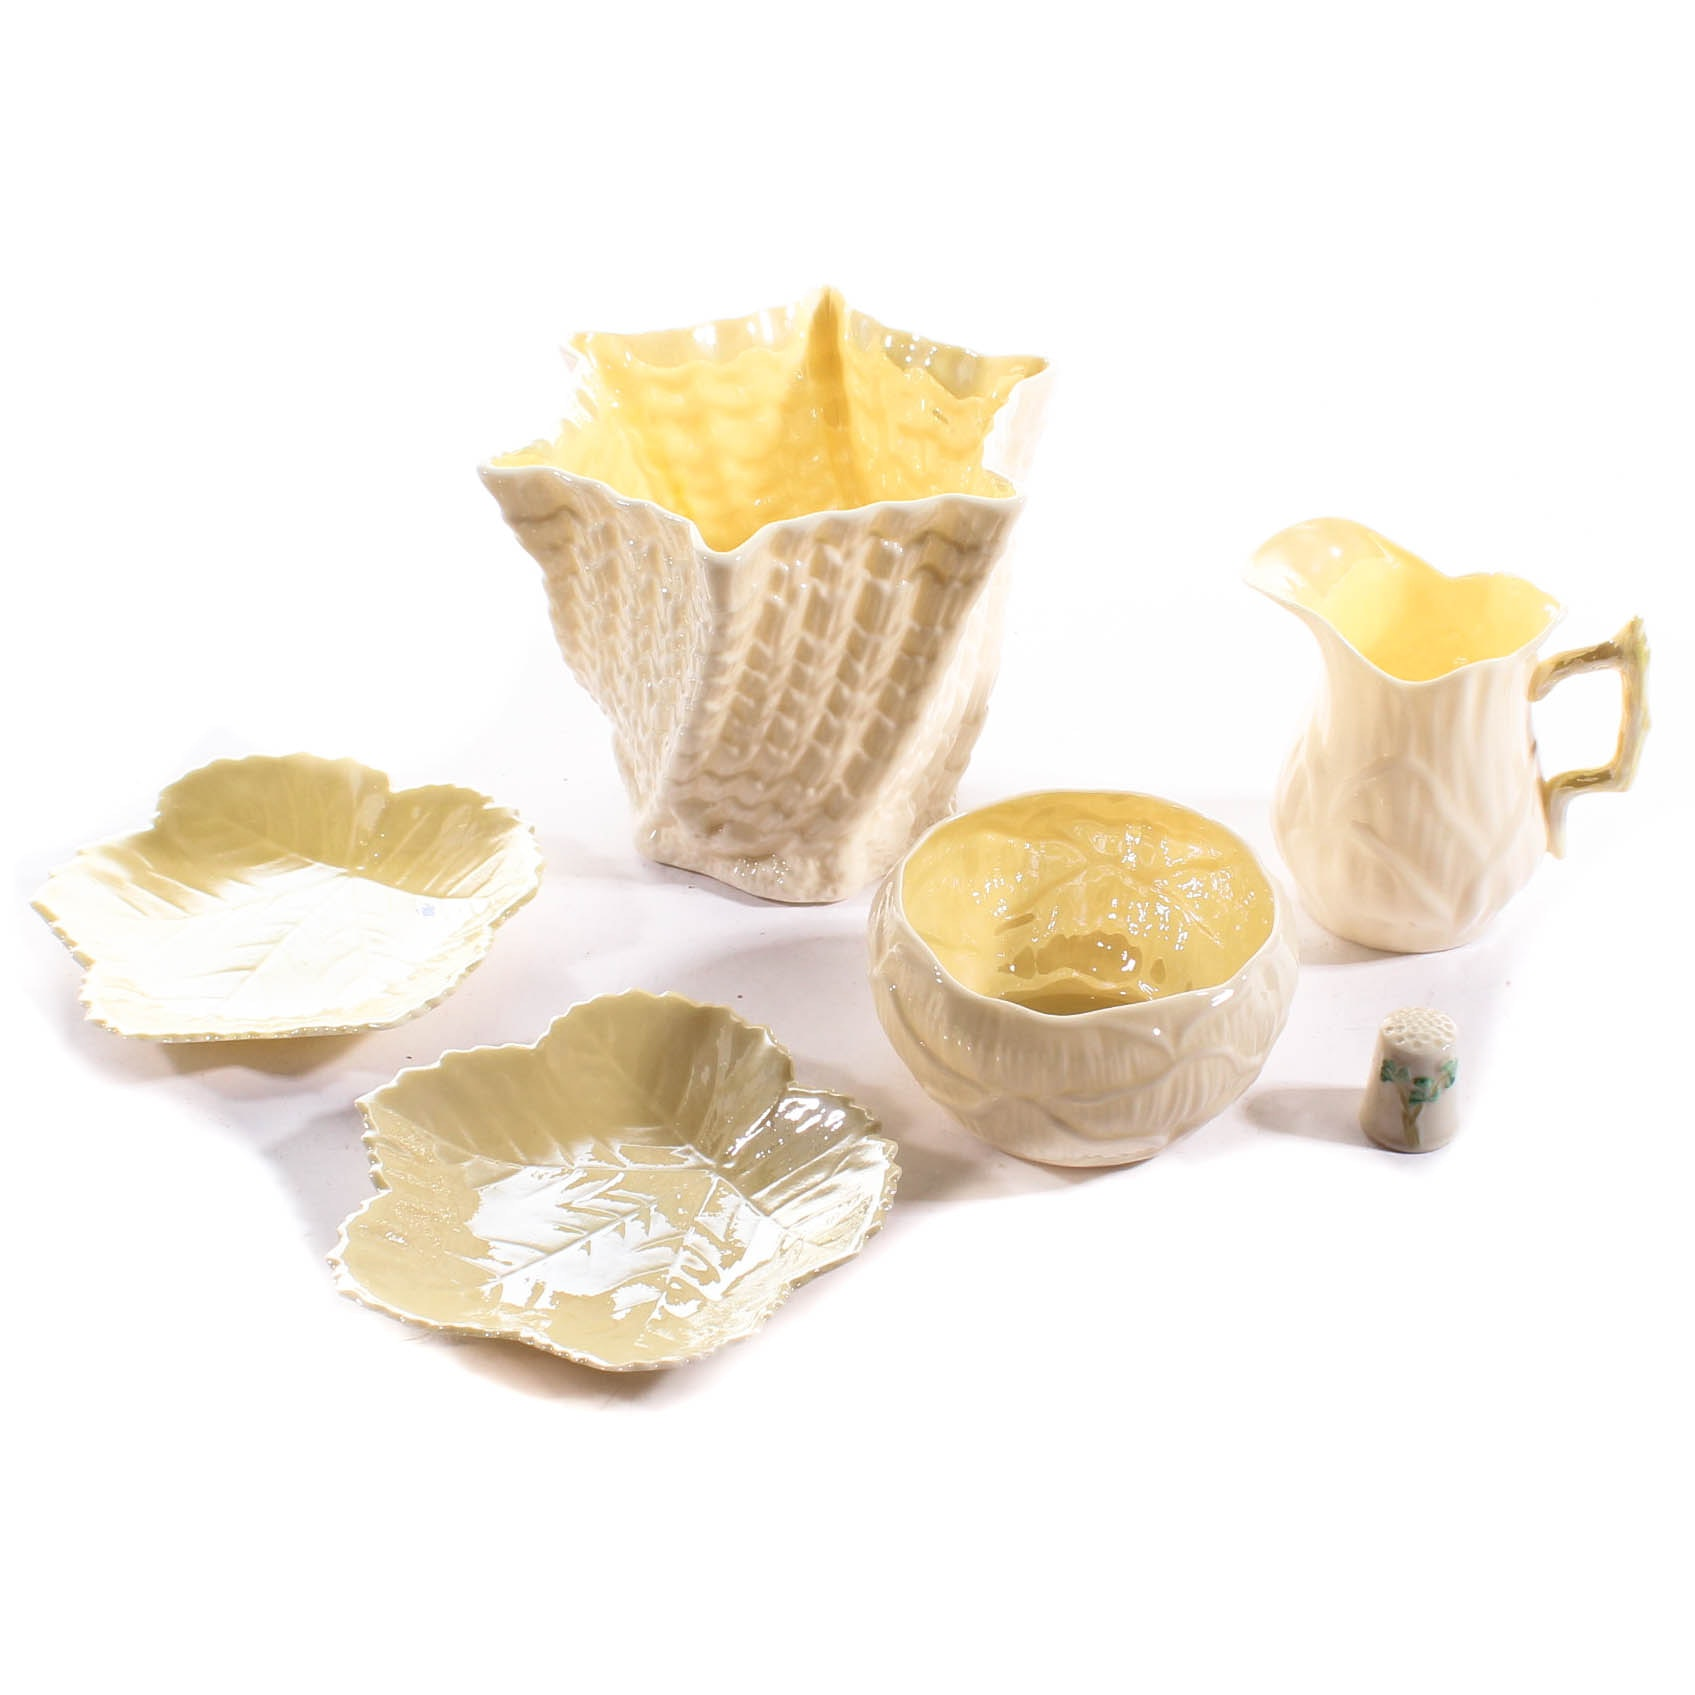 Belleek Parianware Serving Pieces and Thimble